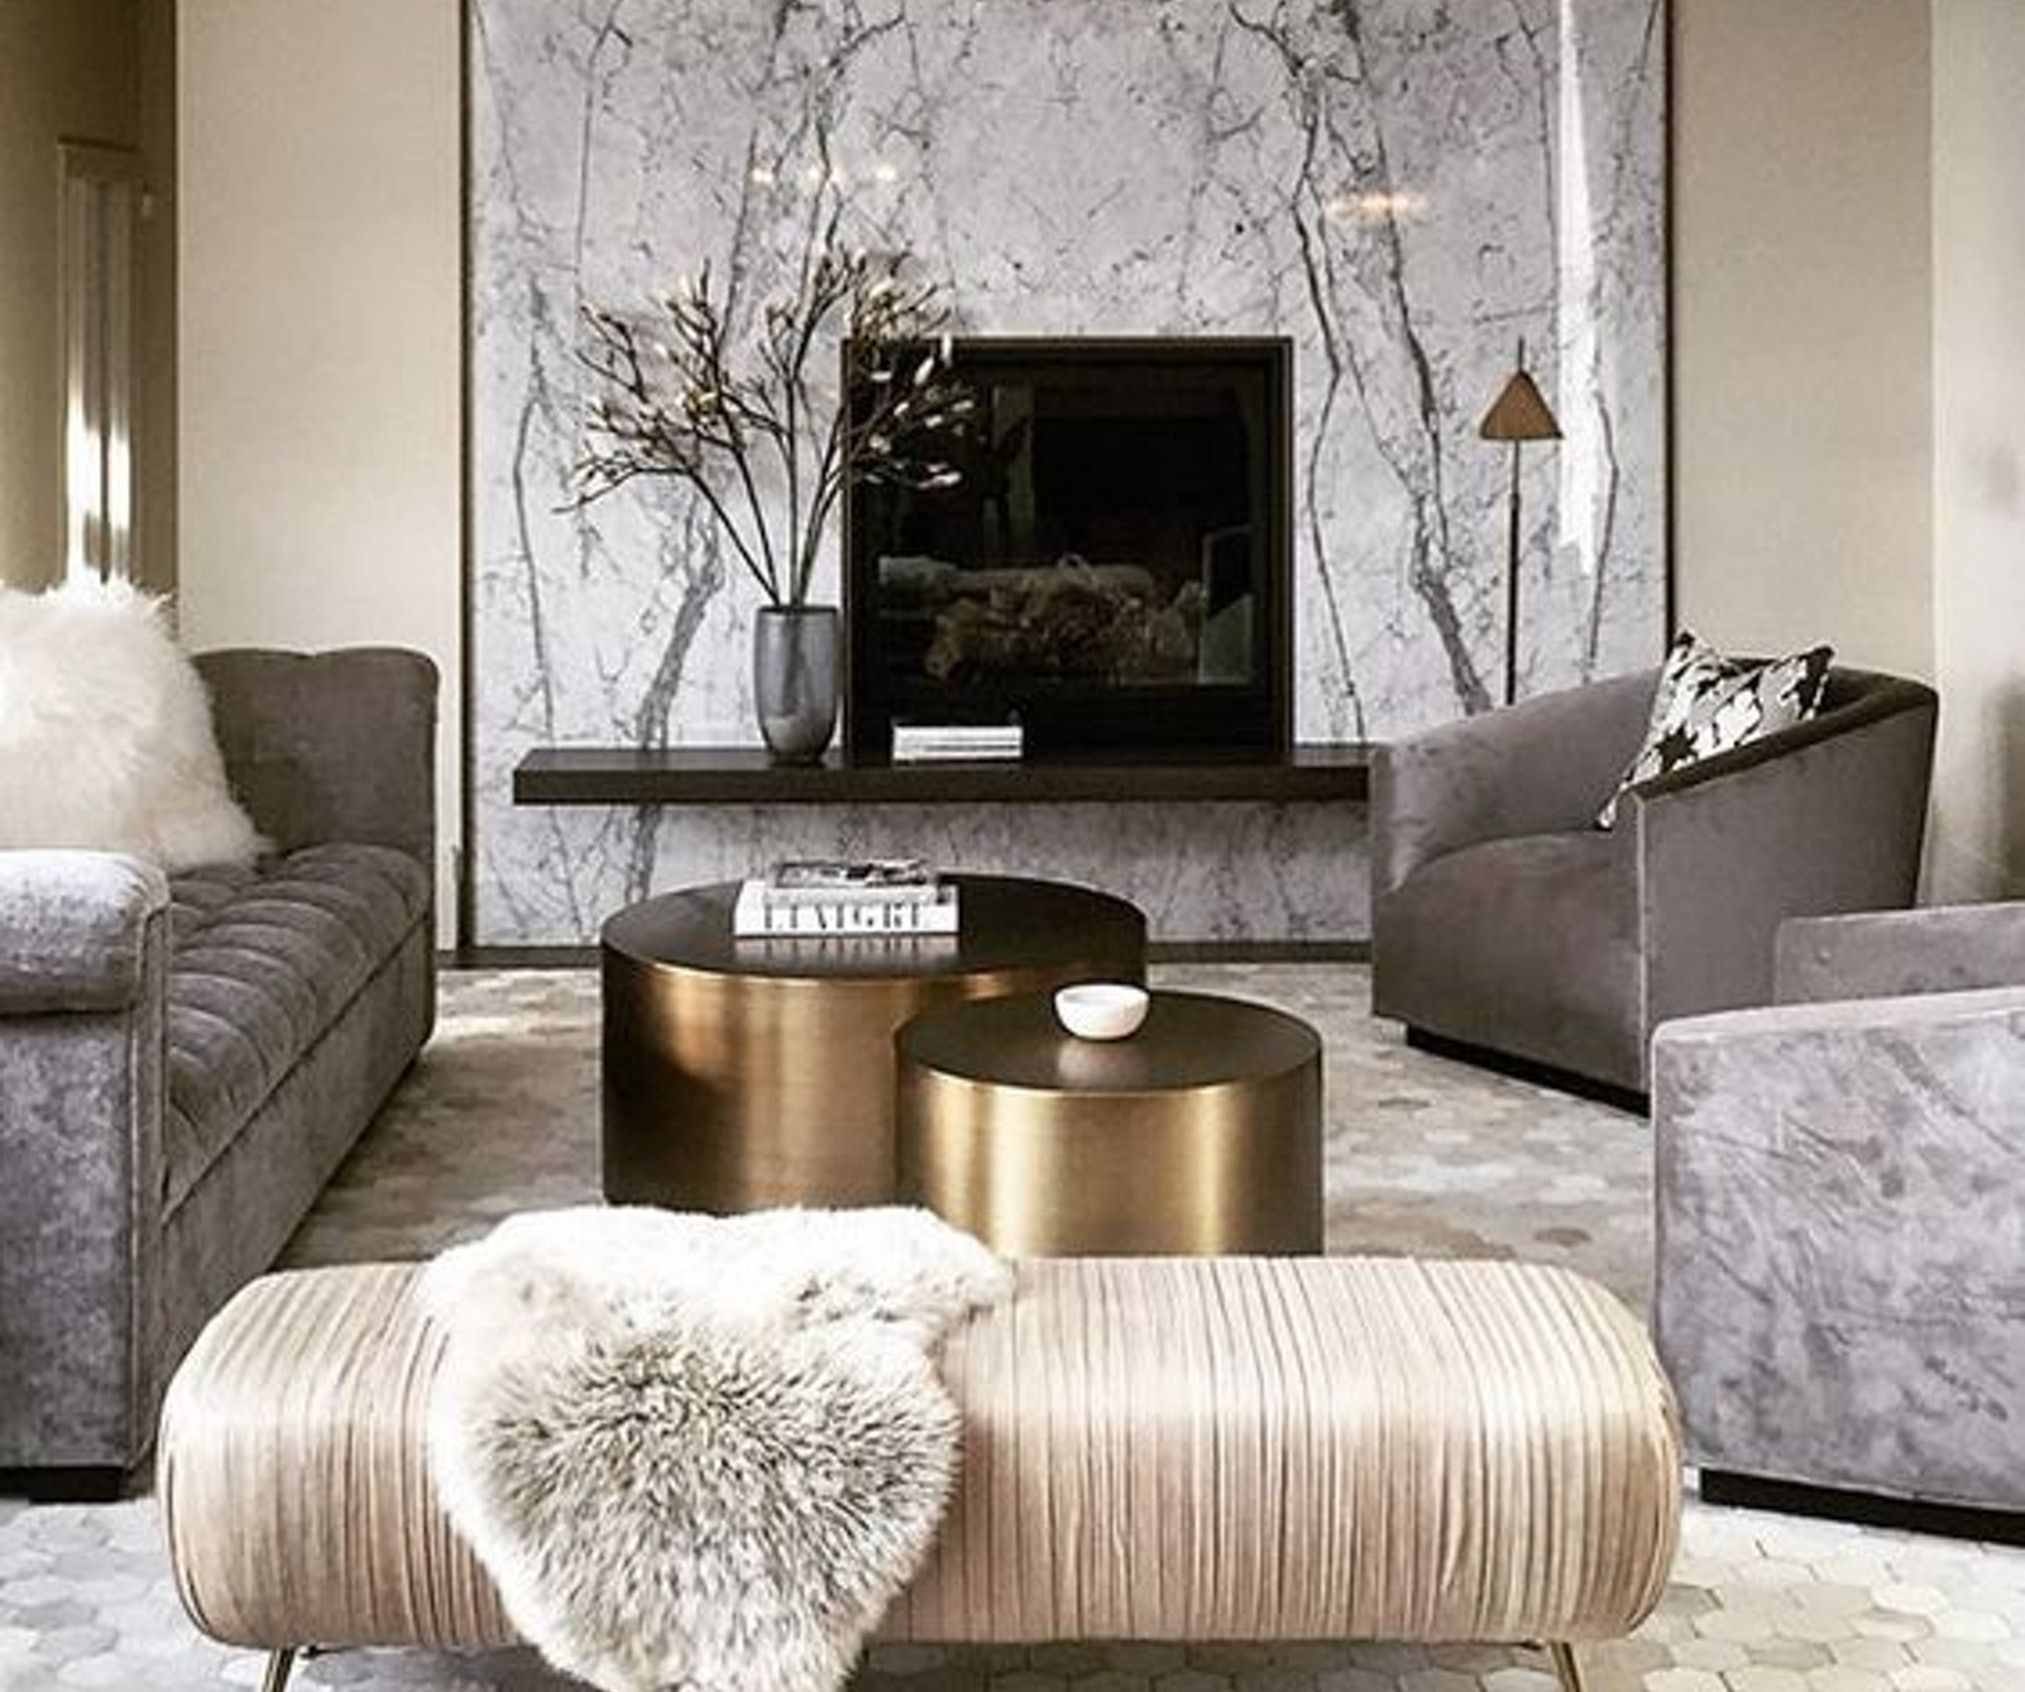 Interior Design Style Quiz   Whatu0027s Your Decorating Style